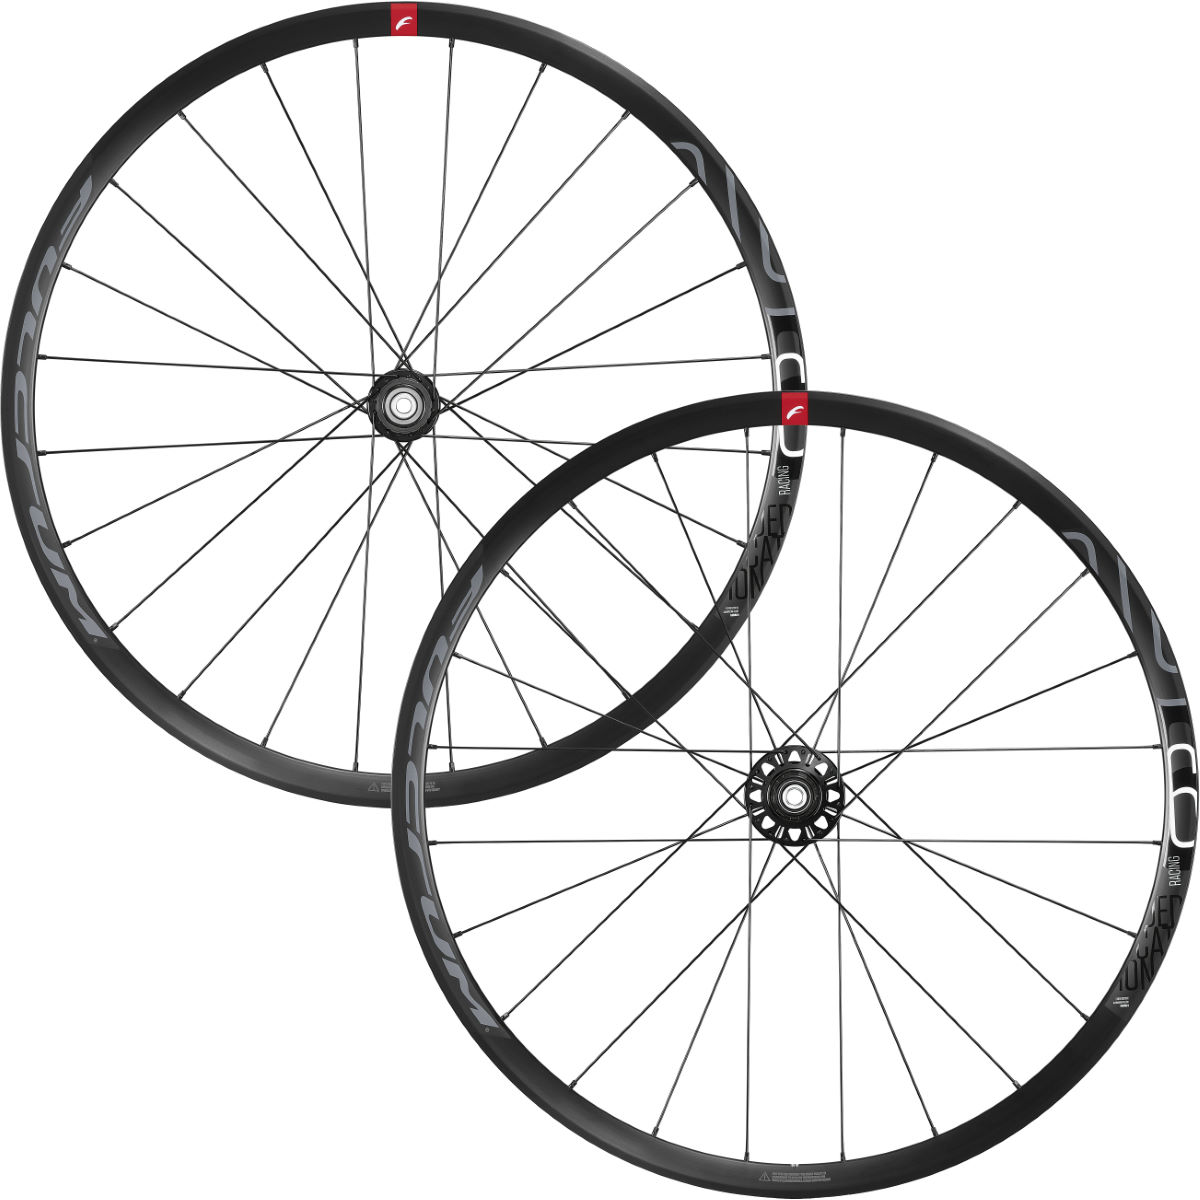 Fulcrum Racing 6 DB Road Disc Wheelset - Ruedas de competición